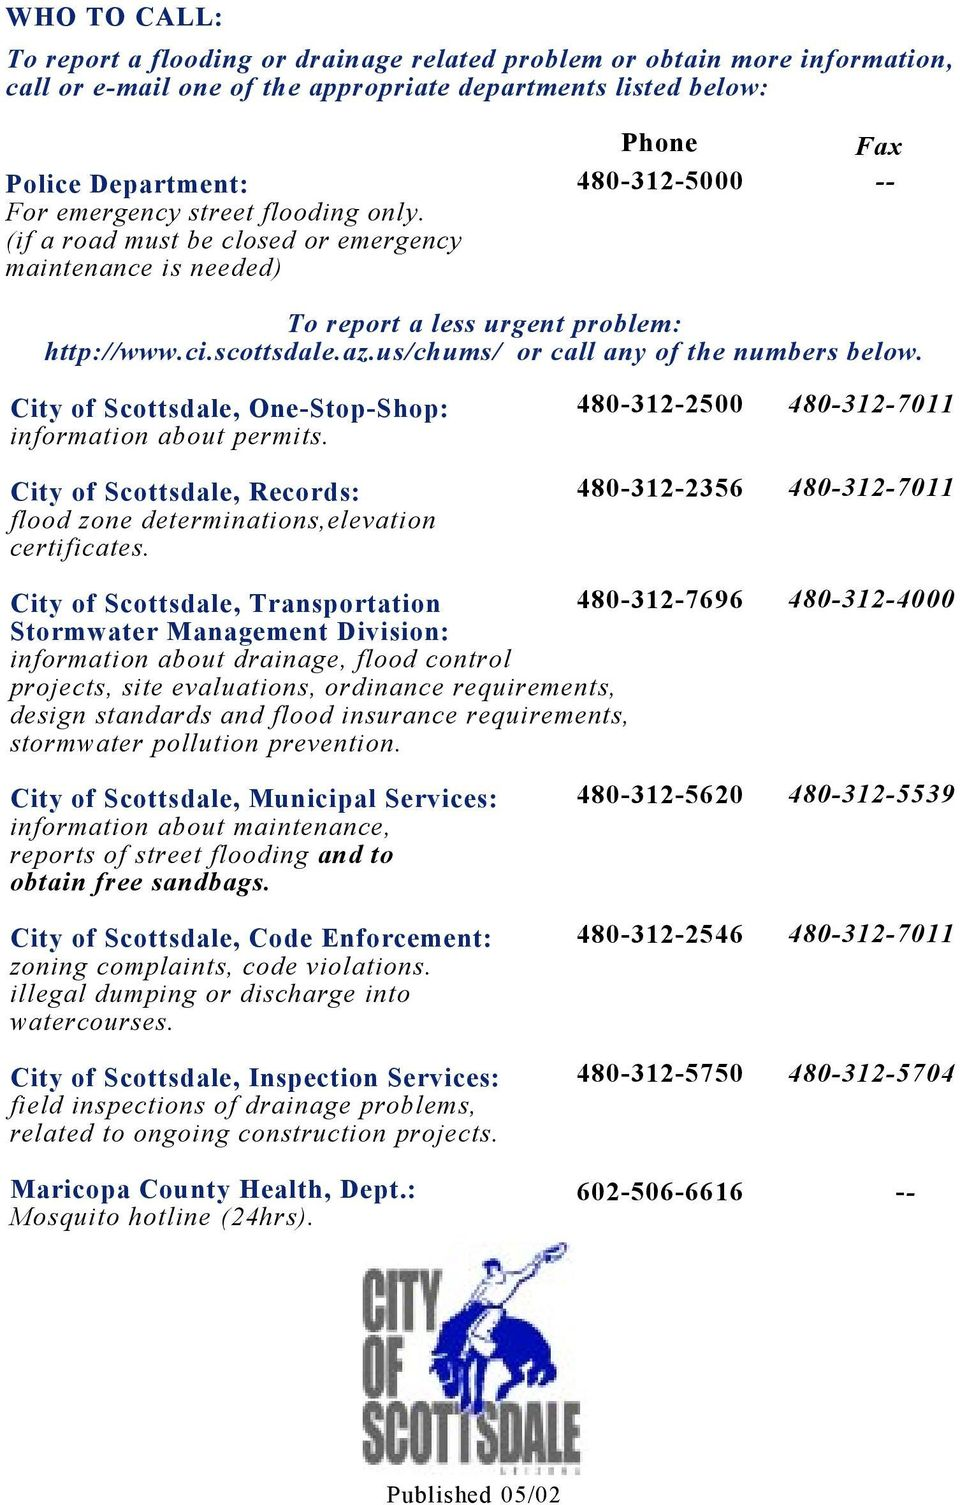 us/chums/ or call any of the numbers below. City of Scottsdale, One-Stop-Shop: information about permits. City of Scottsdale, Records: flood zone determinations,elevation certificates.